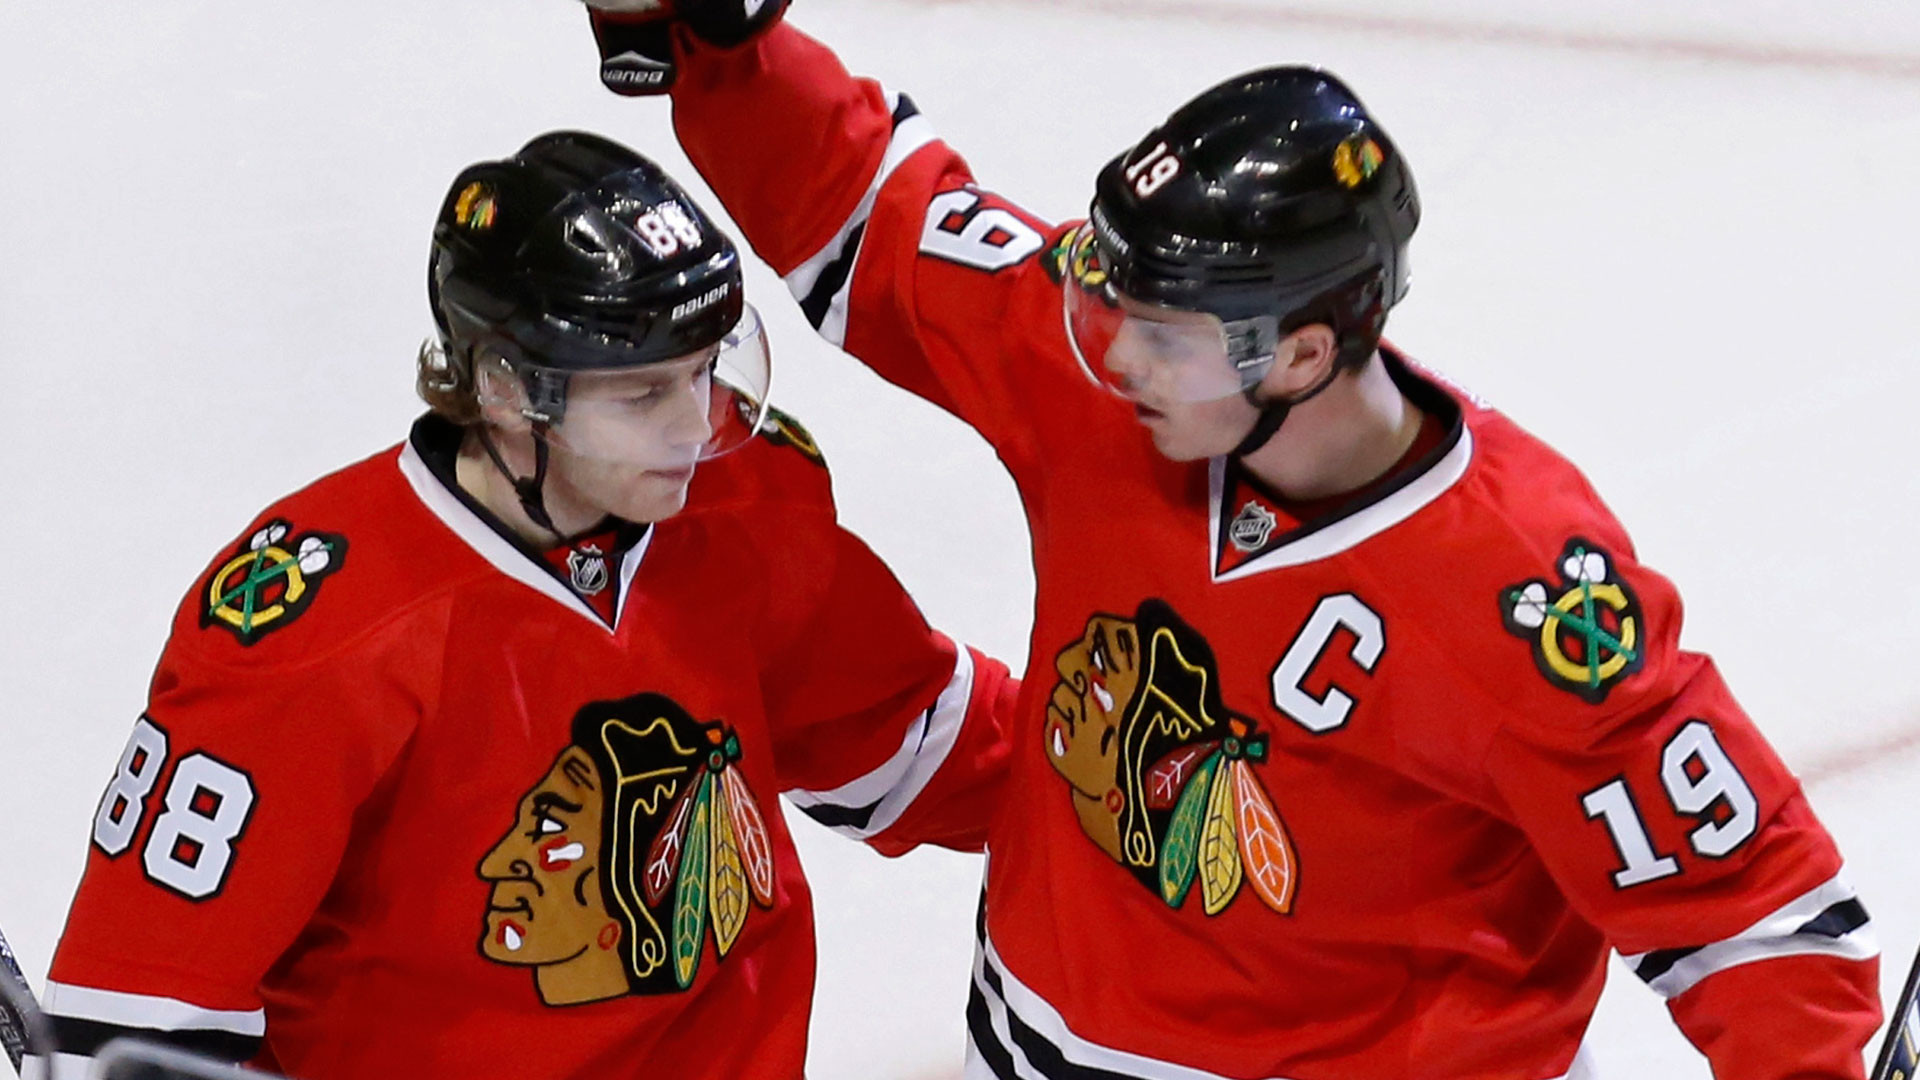 1920x1080 Jonathan Toews and Patrick Kane still aren't overpaid | NHL | Sporting News